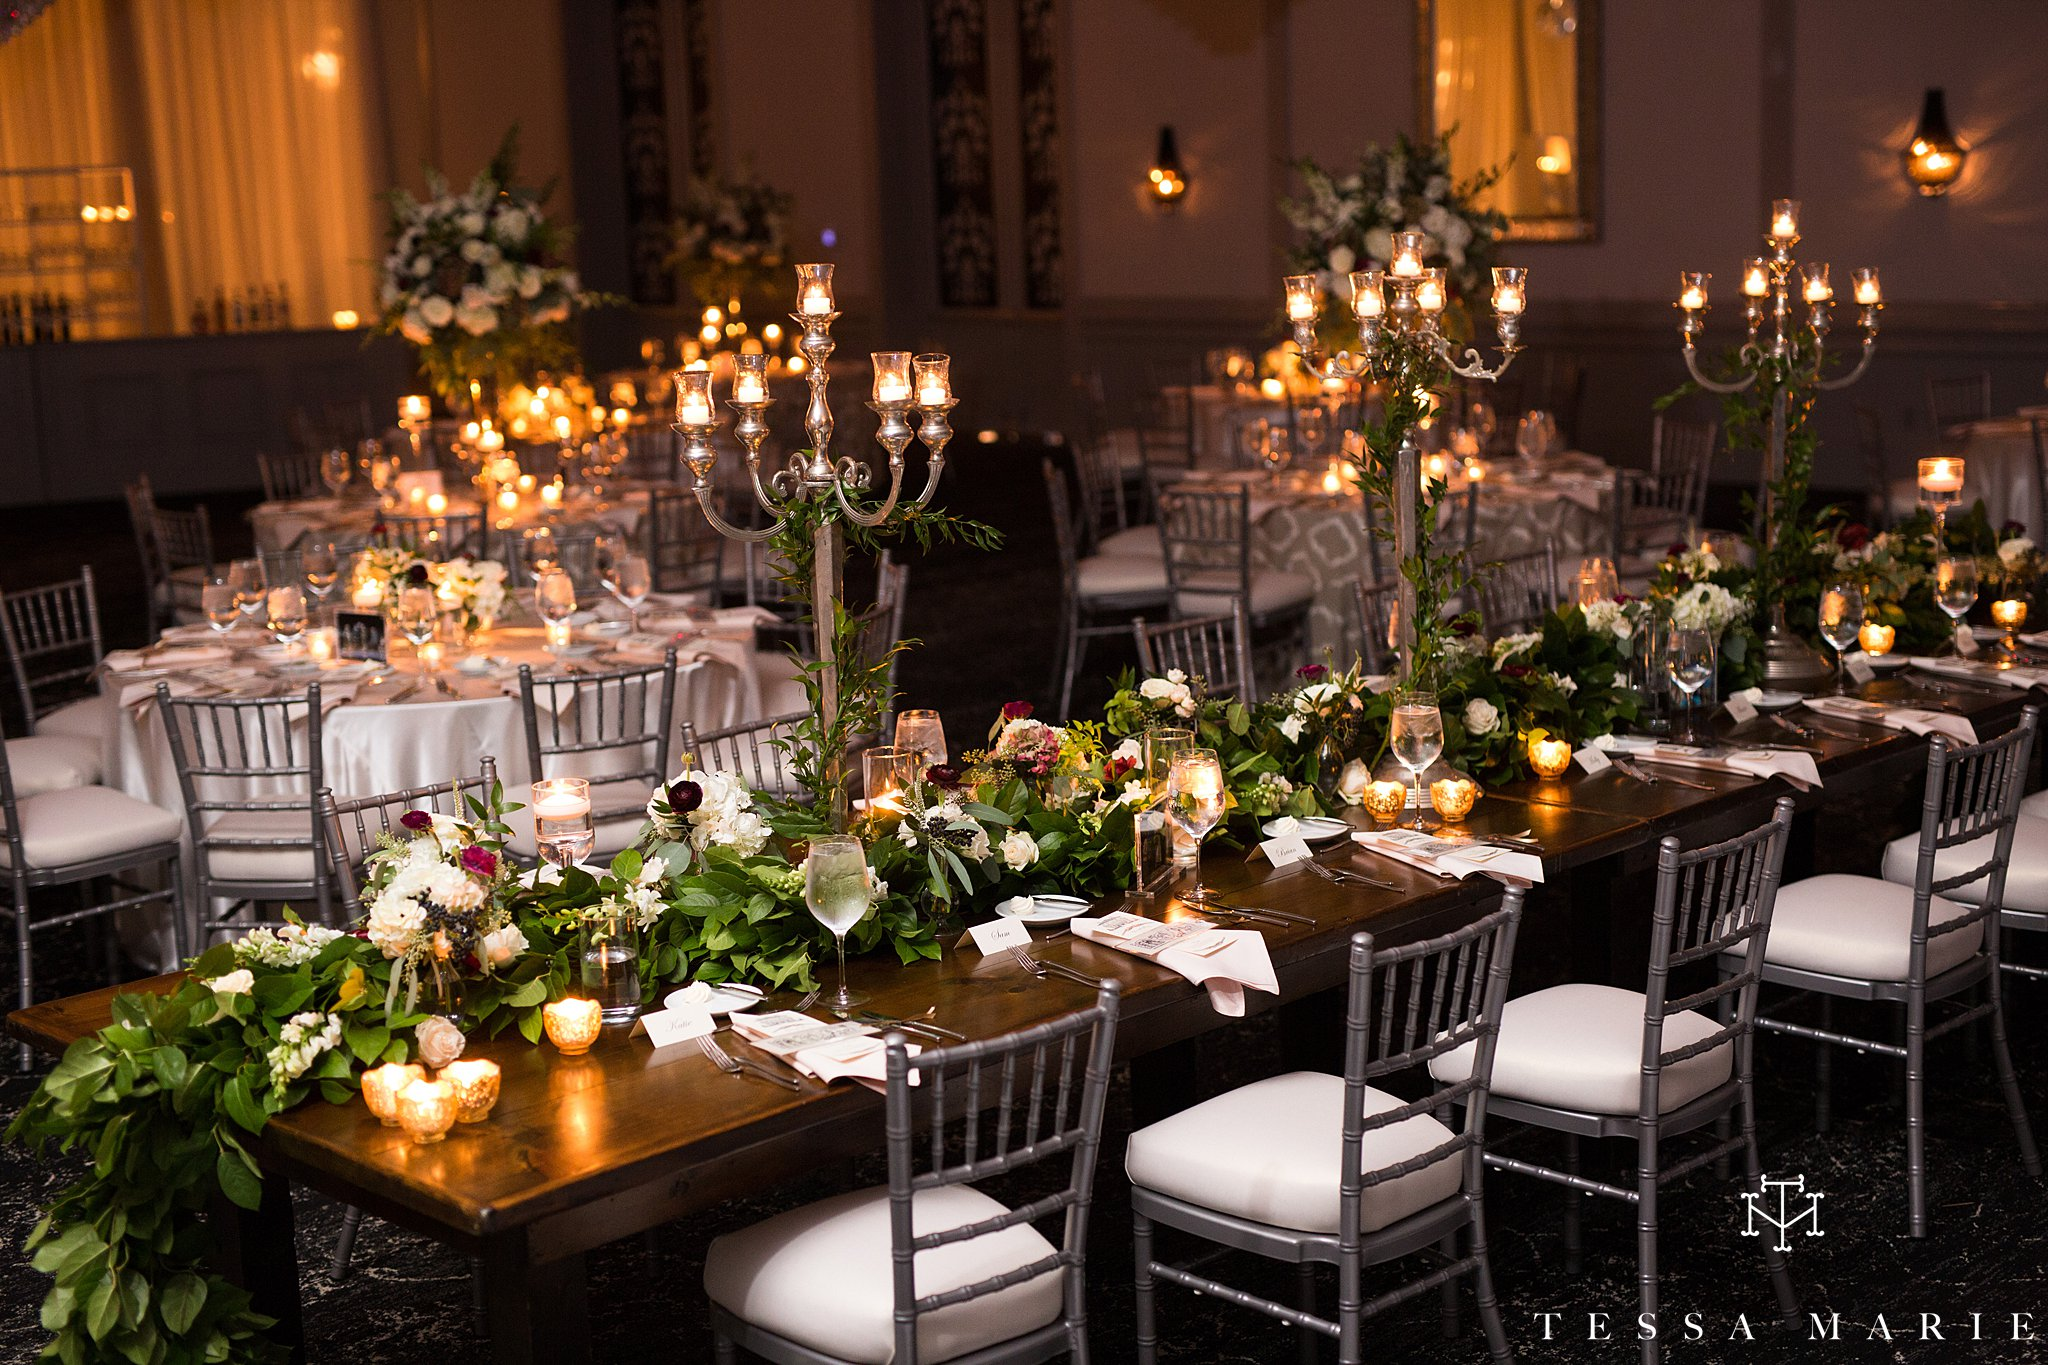 tessa_marie_weddings_estate_wedding_flourish_wedding_legendary_events_wedding_angels_bride_groom_wedding_Day_rainy_wedding_day_fall_october_wedding_atlantas_best_wedding_professionals_0653.jpg